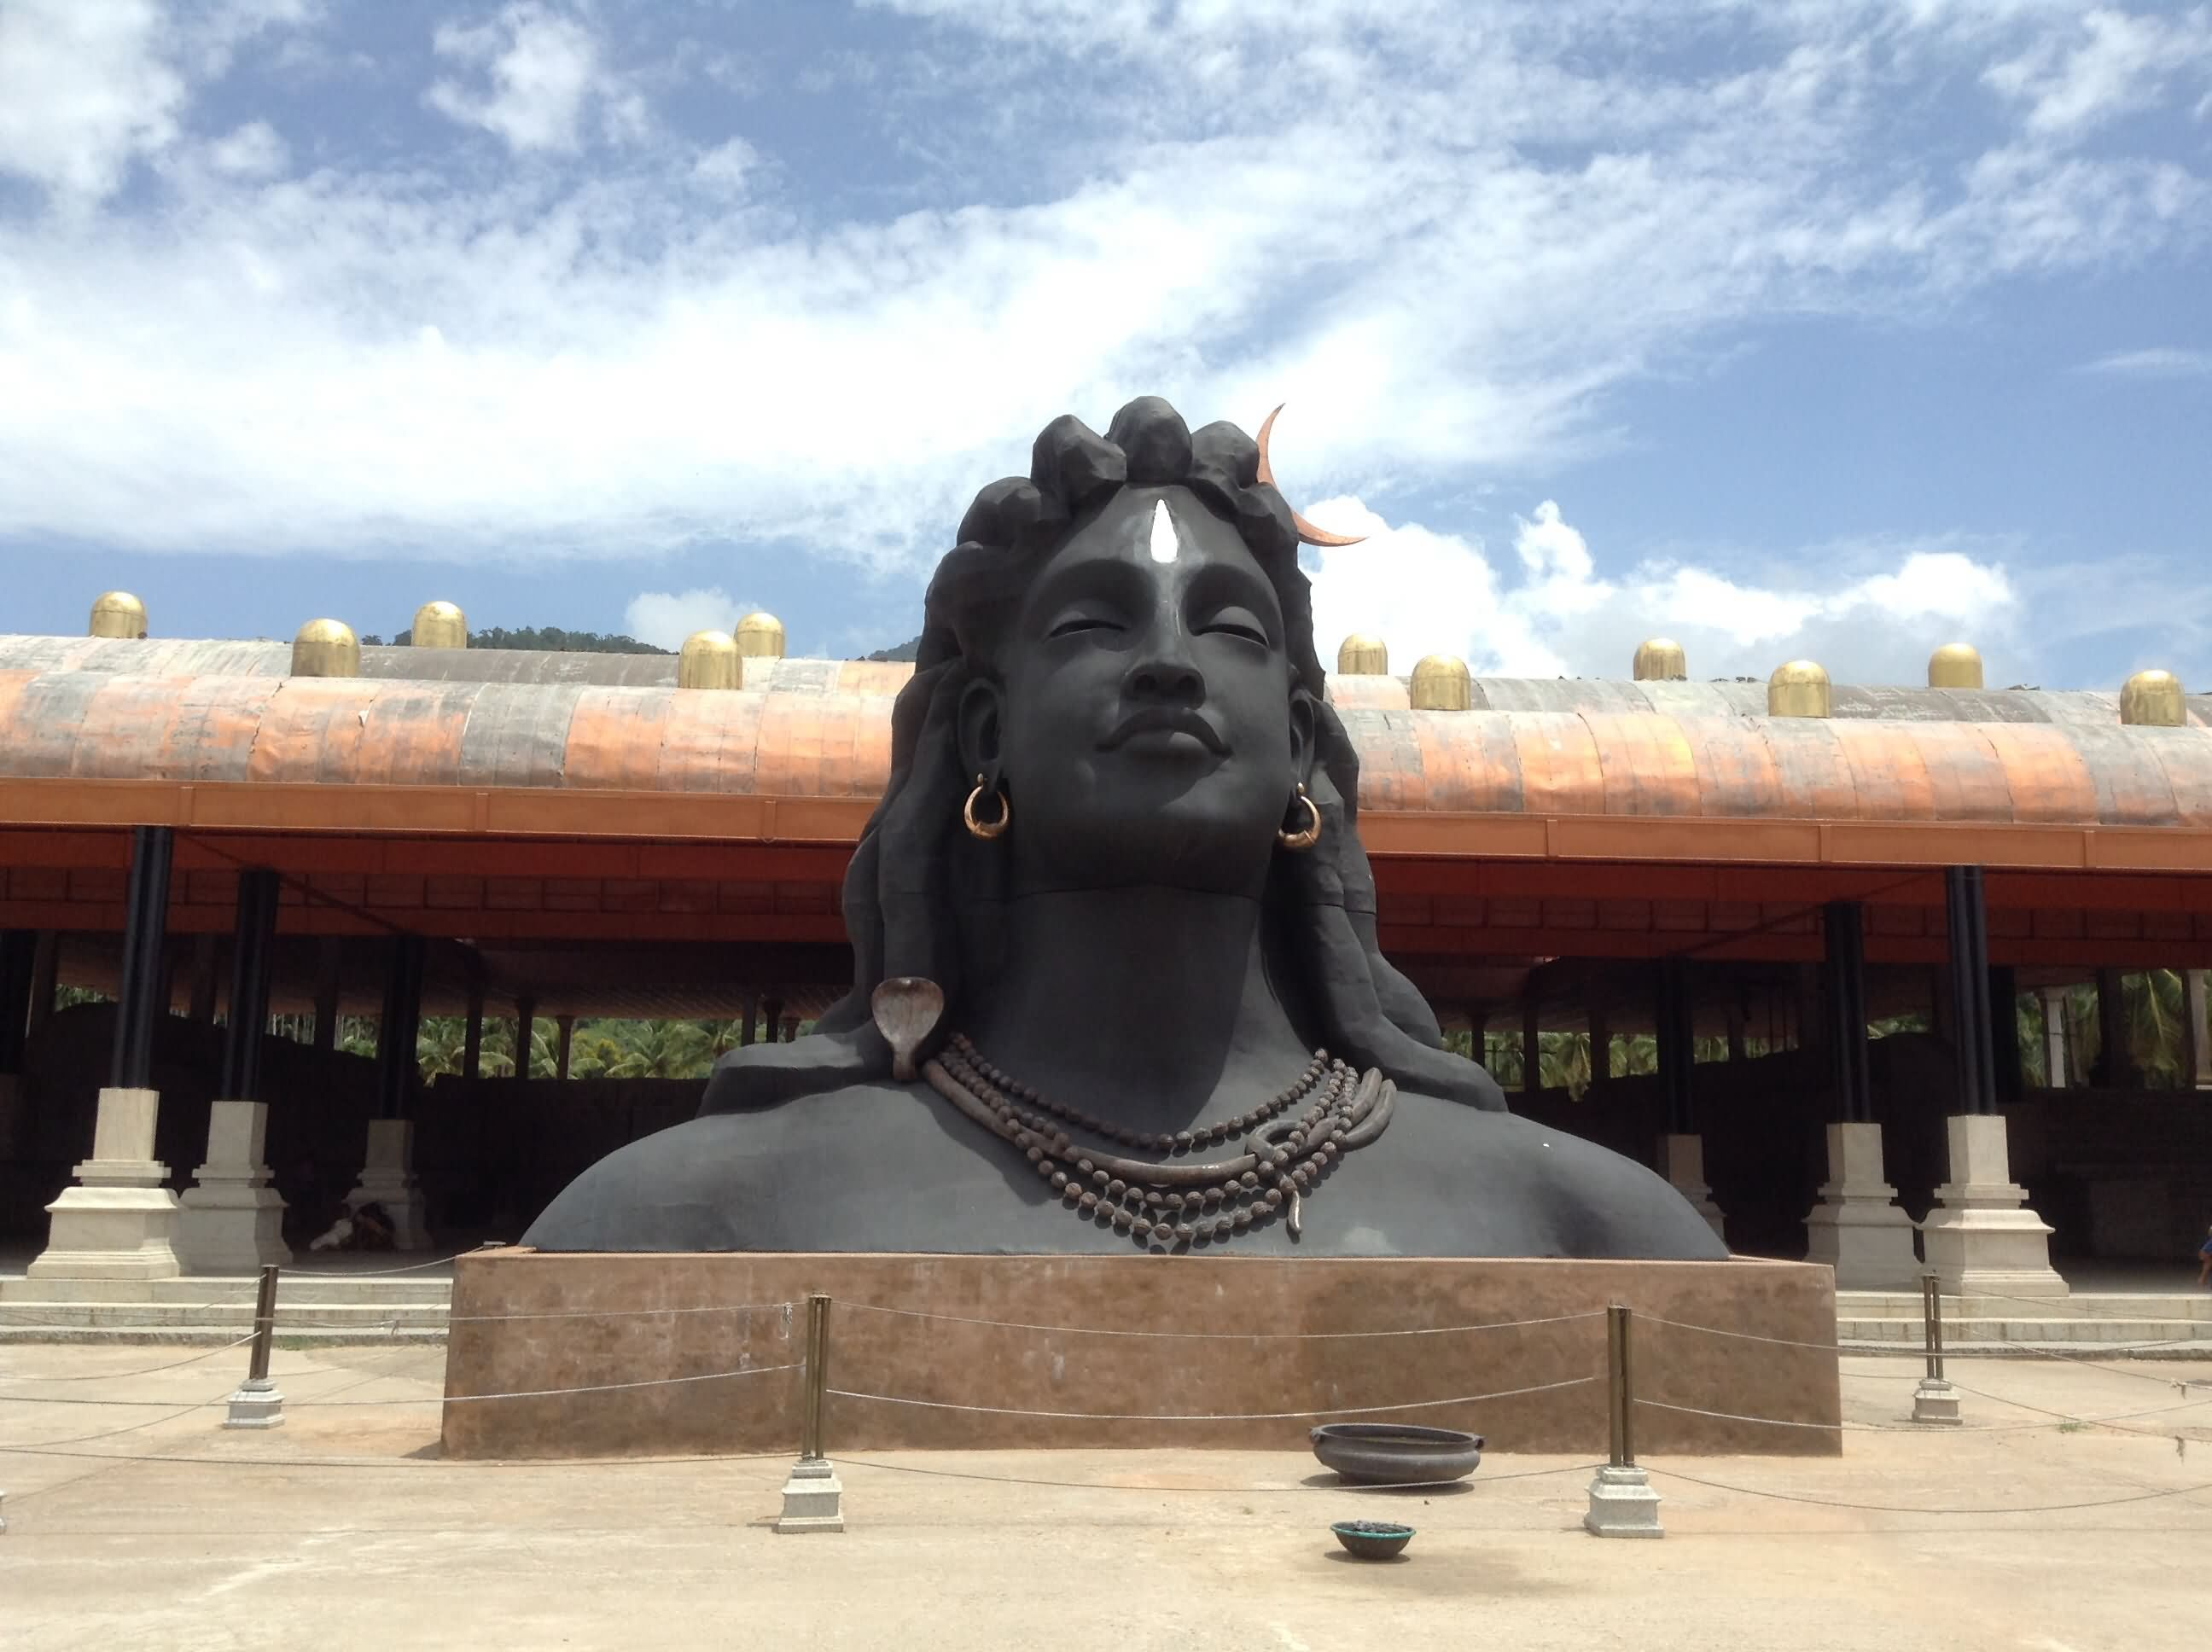 The Statue Of Lord Shiva In Dhyanalinga Yogic Temple In Coimbatore, Tamil Nadu